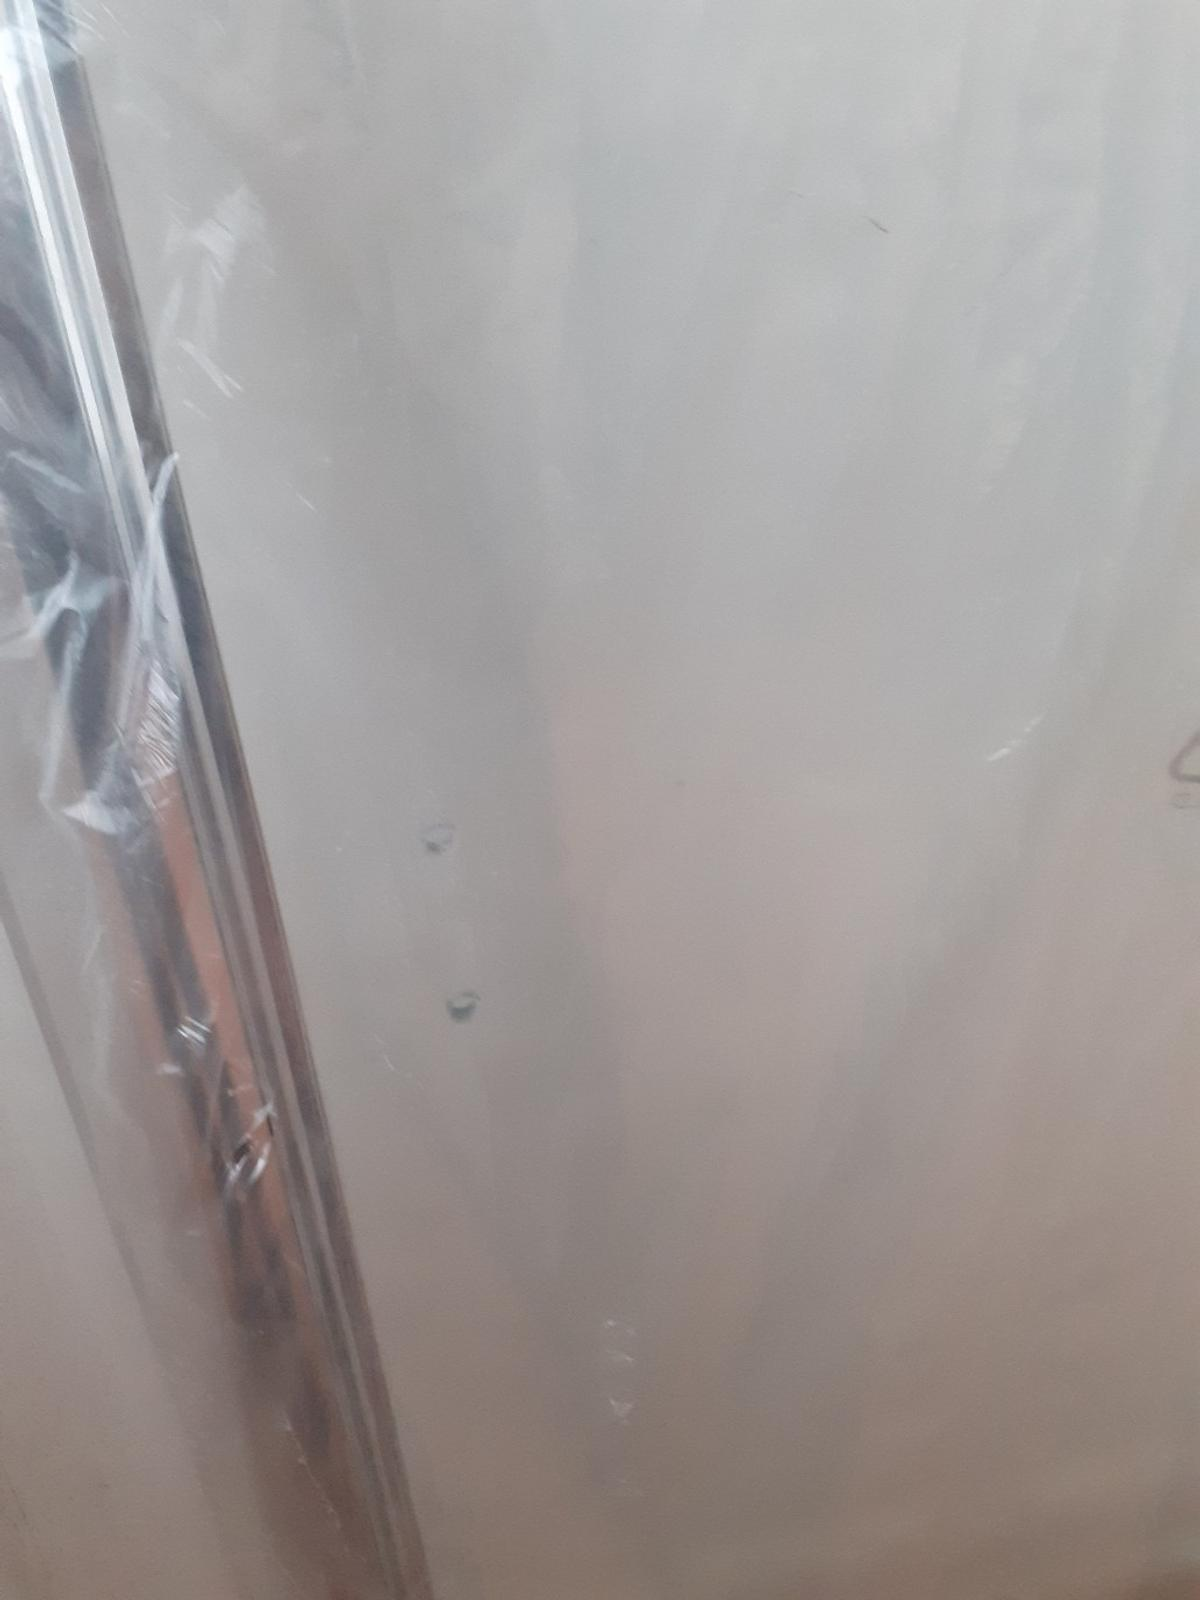 glass shower hinged door in silver frame brand new unused size w 87. h 6 ft ,2 side fixing panel .asking £30 no offers collection only from b23 erdington